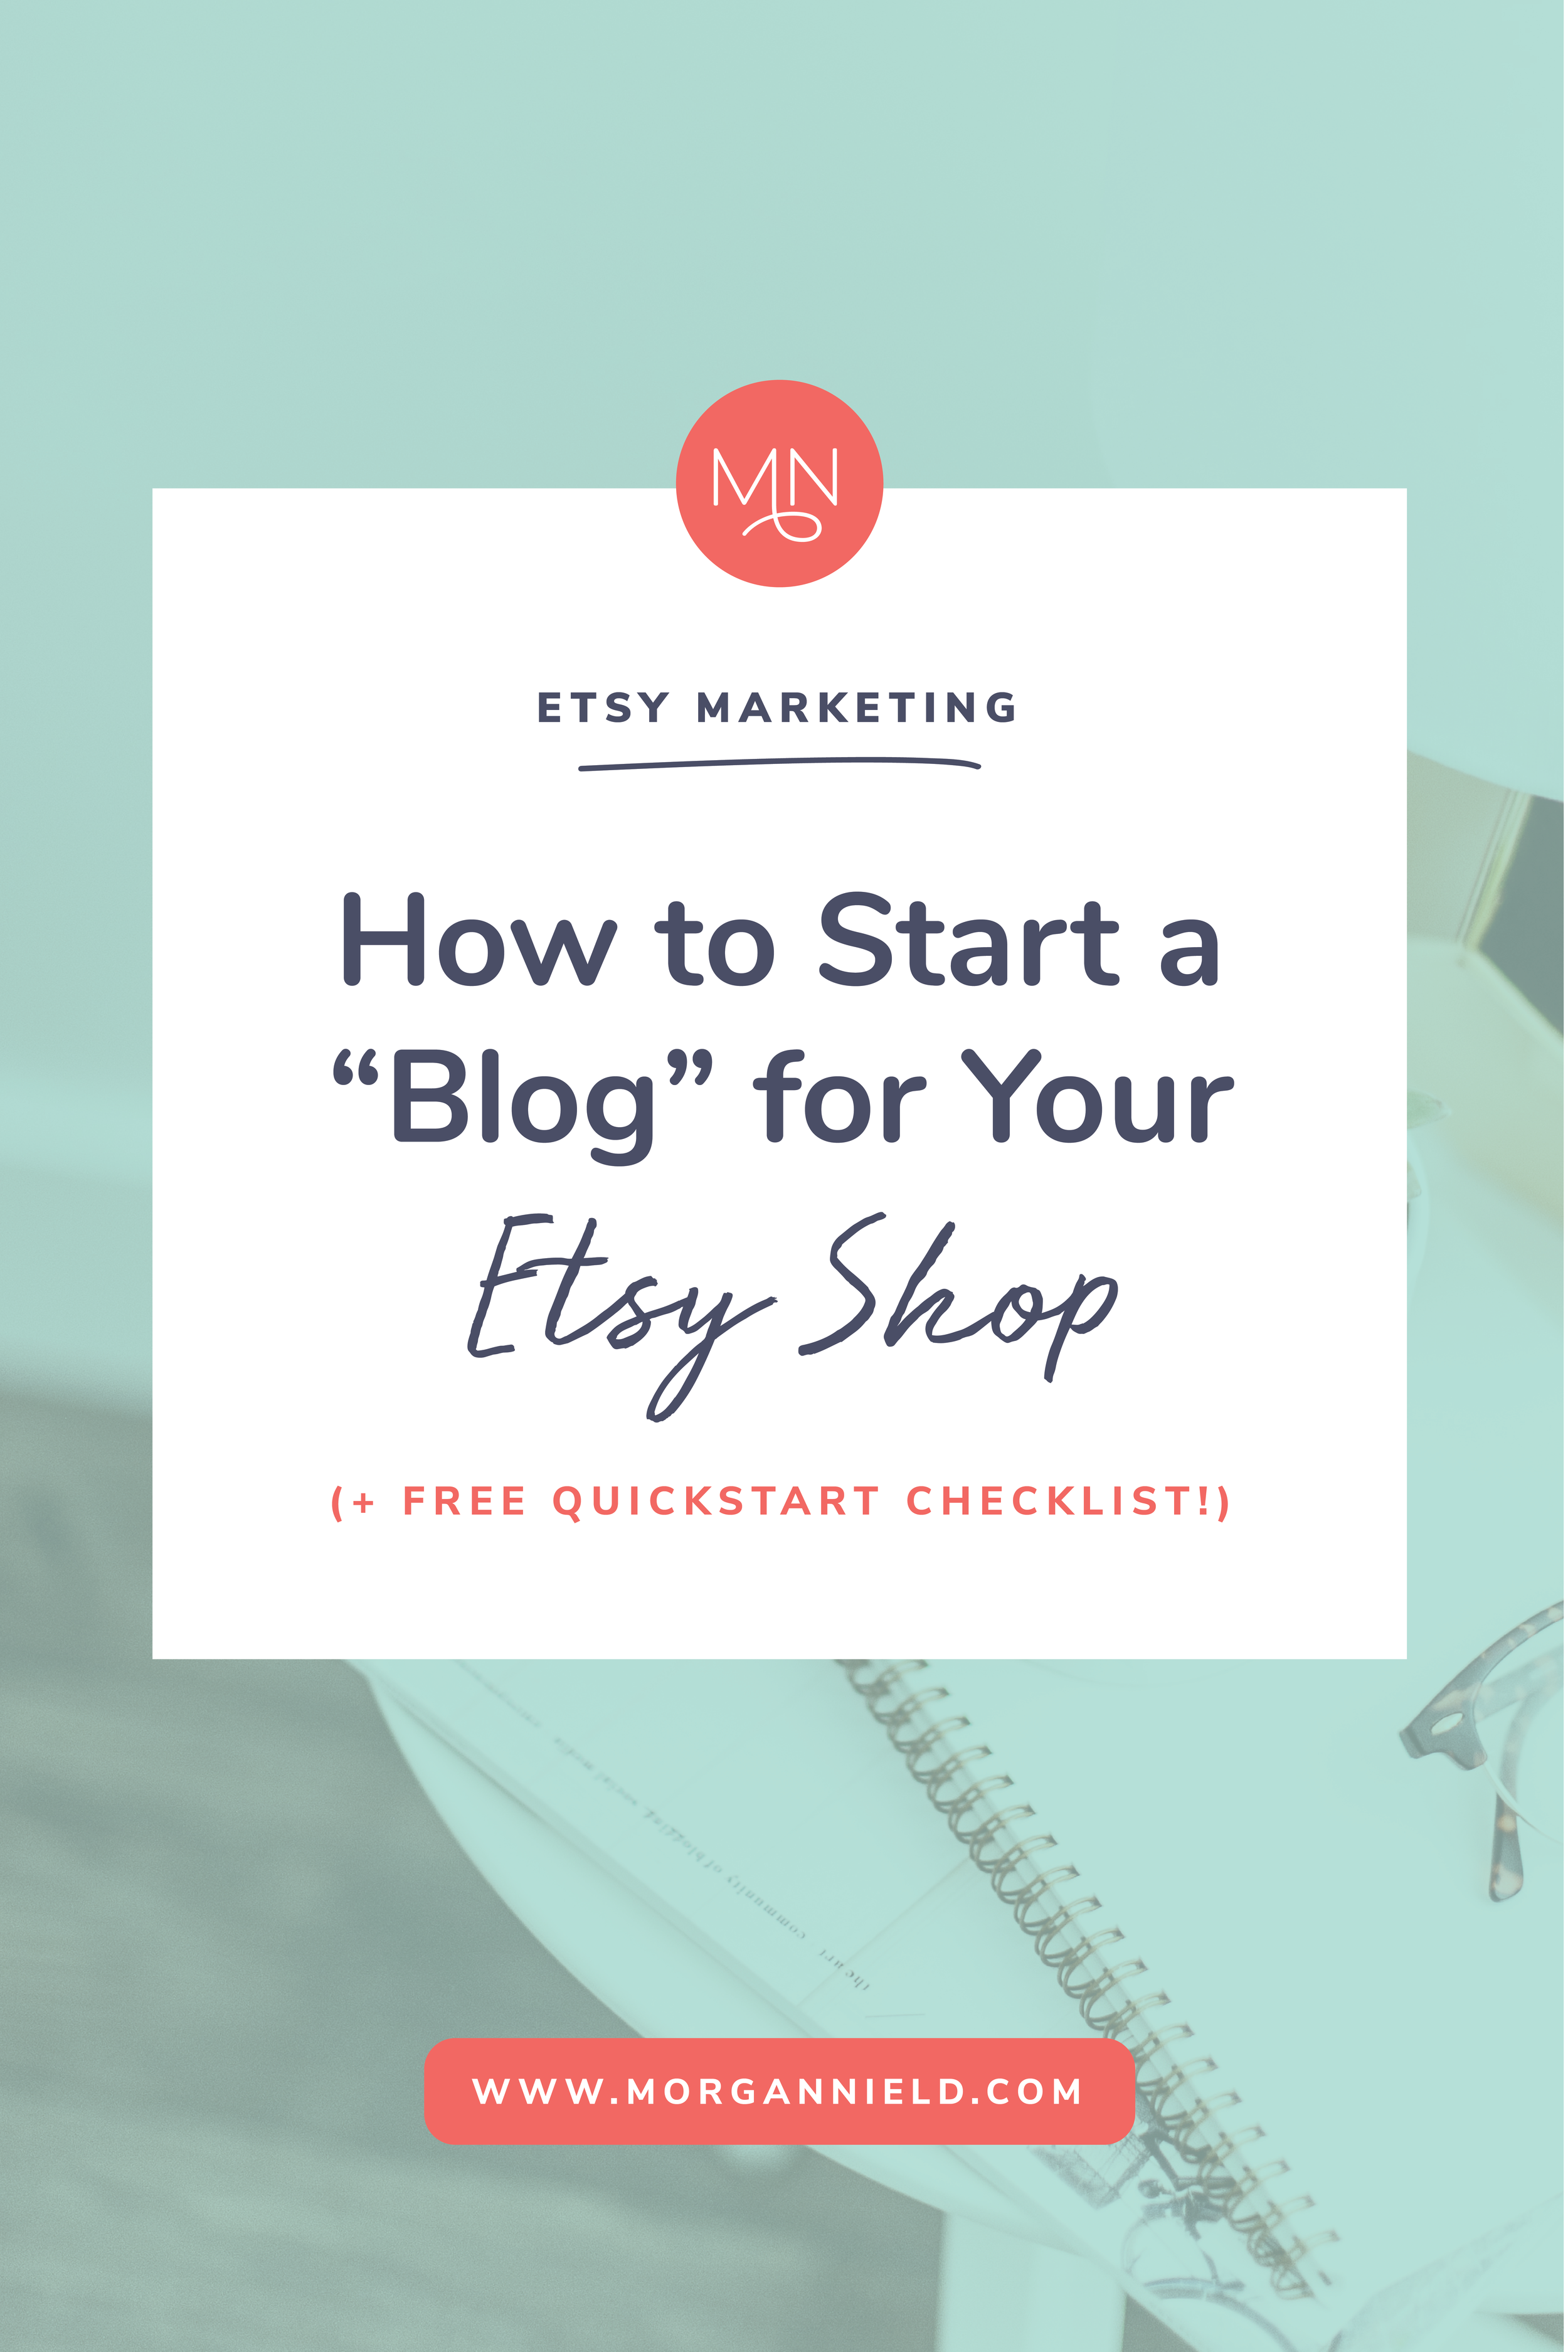 _5BB_5D_How_to_start_a_blog_for_your_etsy_shop-03.png